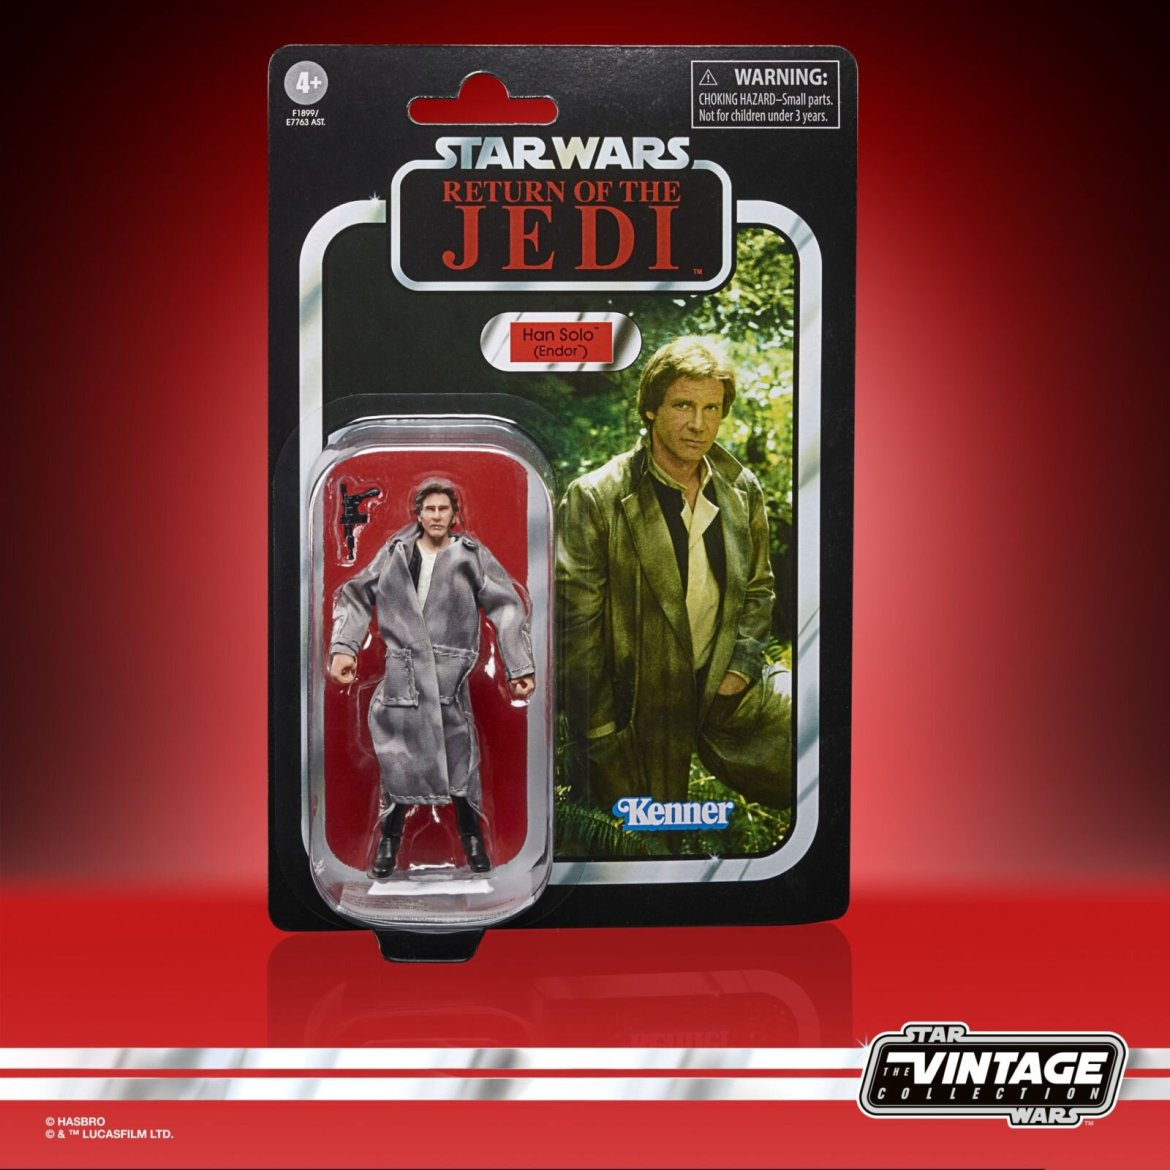 STAR WARS THE VINTAGE COLLECTION 3.75-INCH HAN SOLO (ENDOR) Figure - in pck (1).jpg